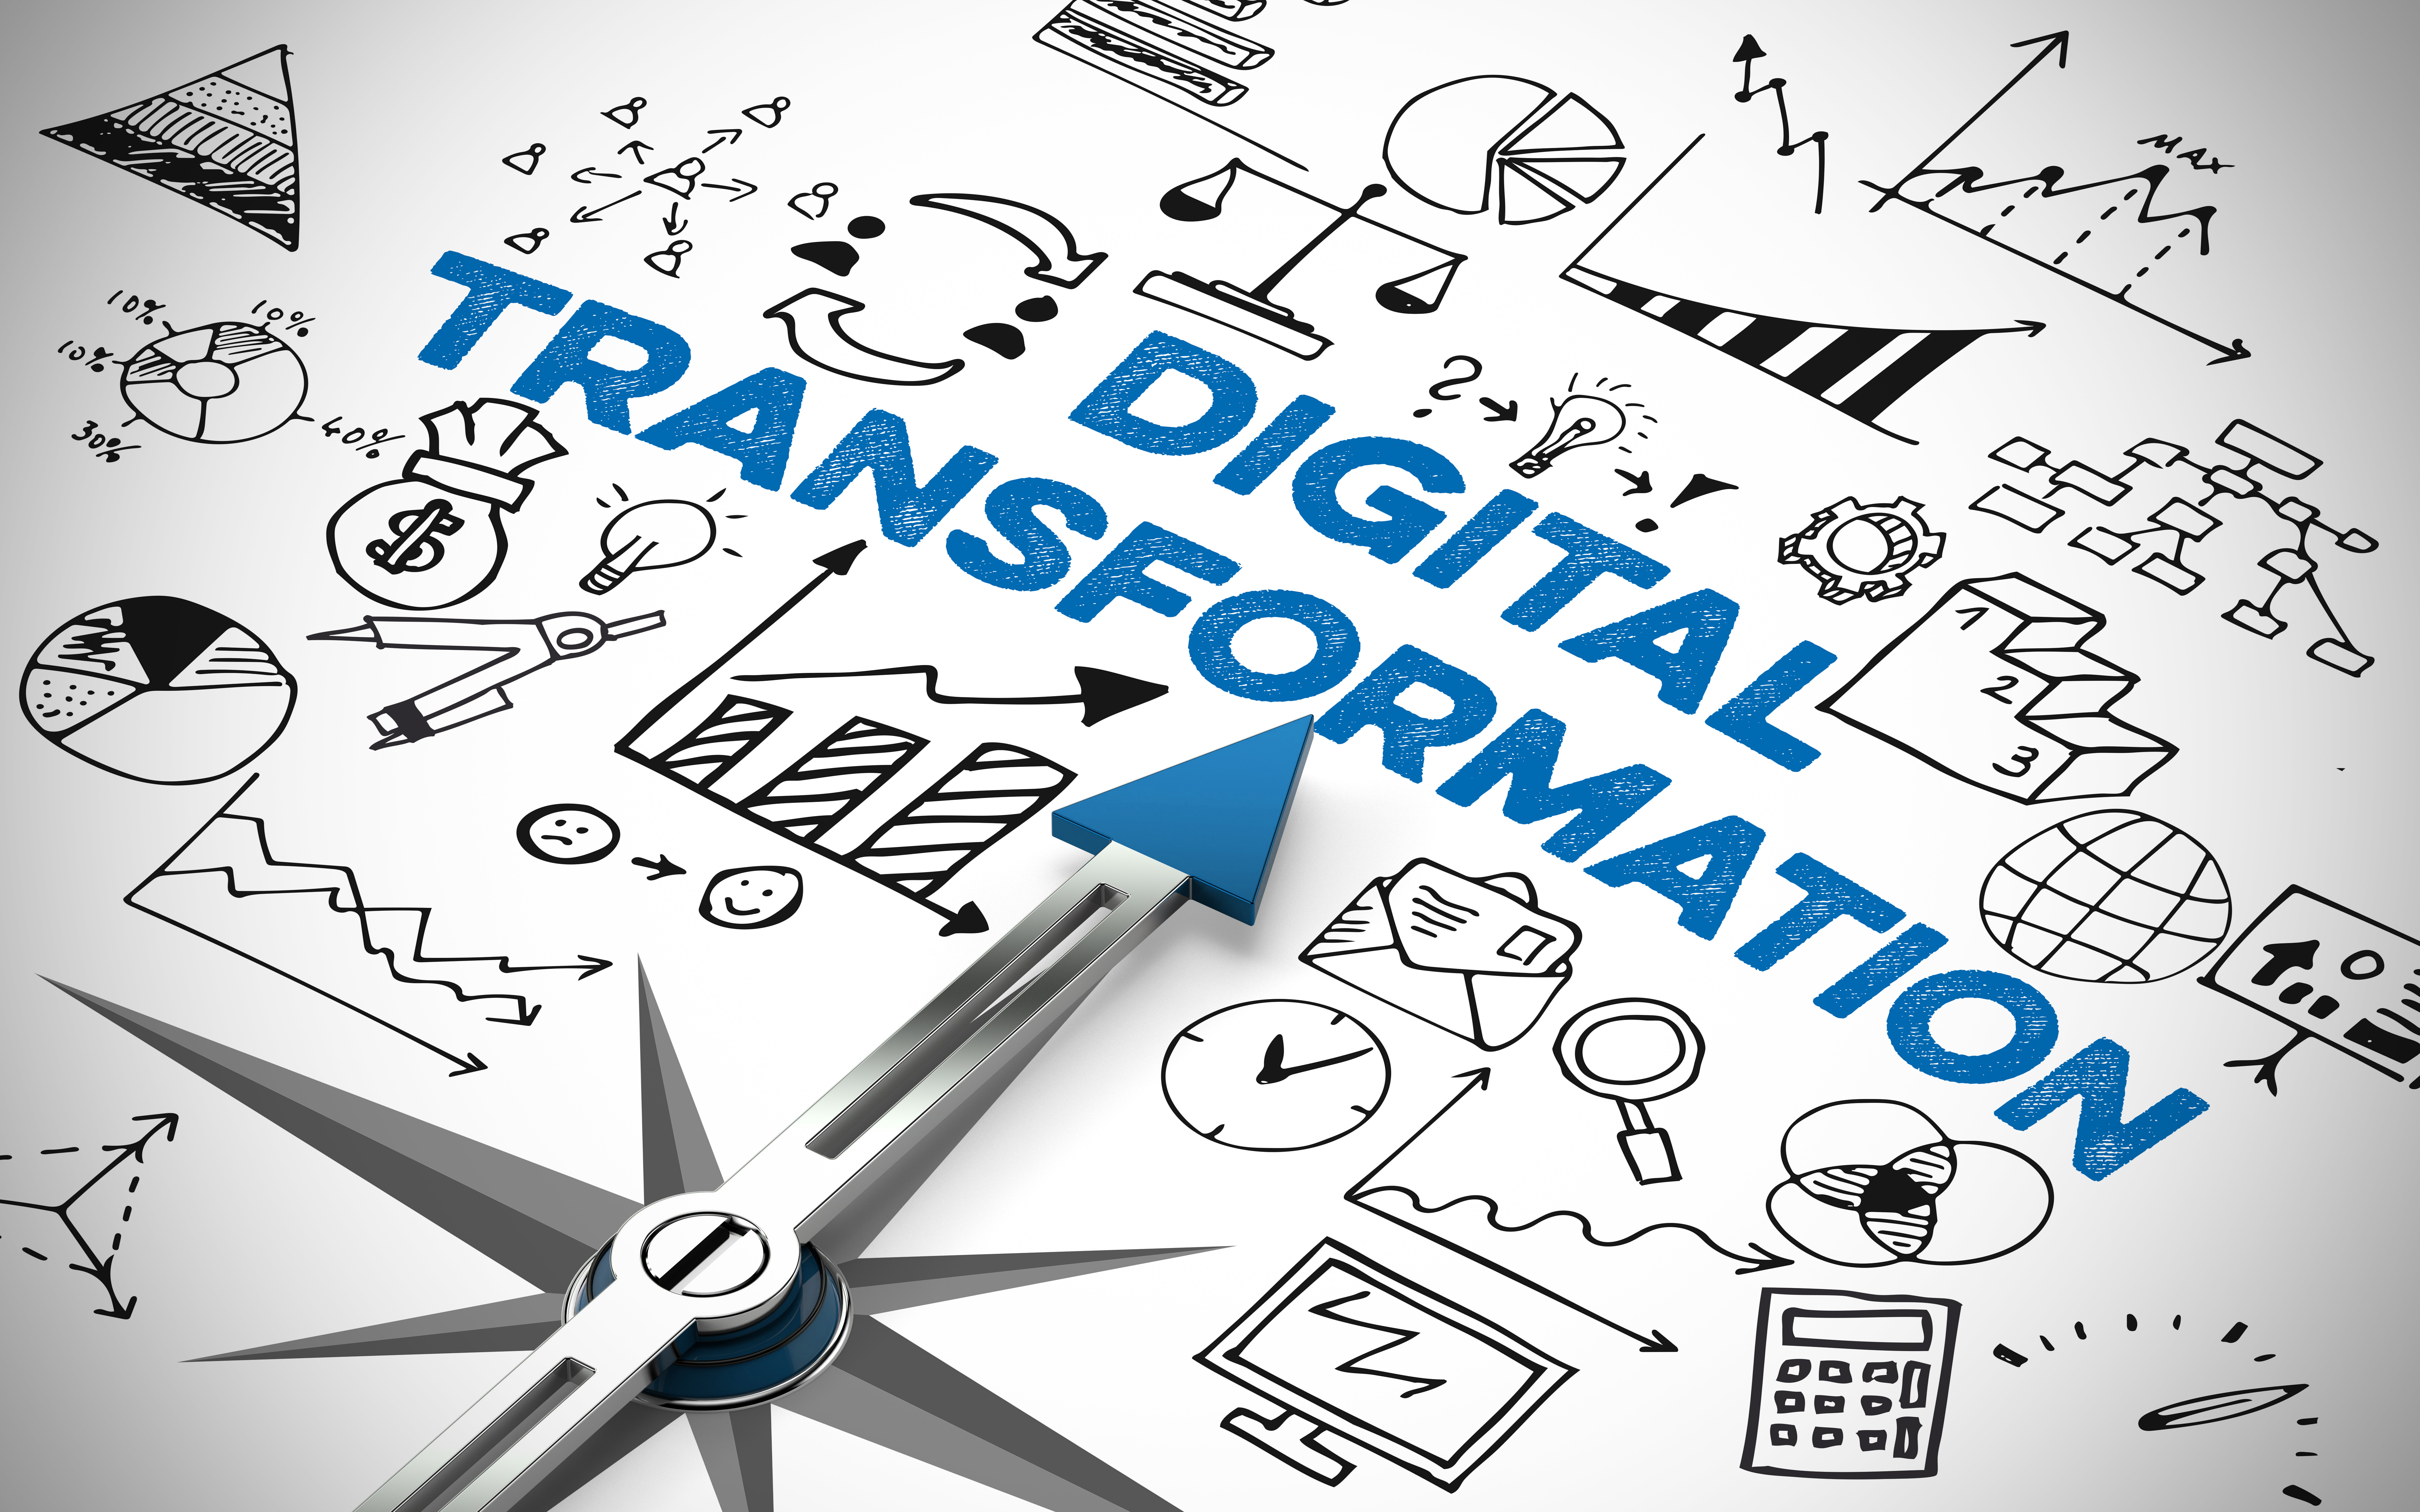 HBDigitalTransformation